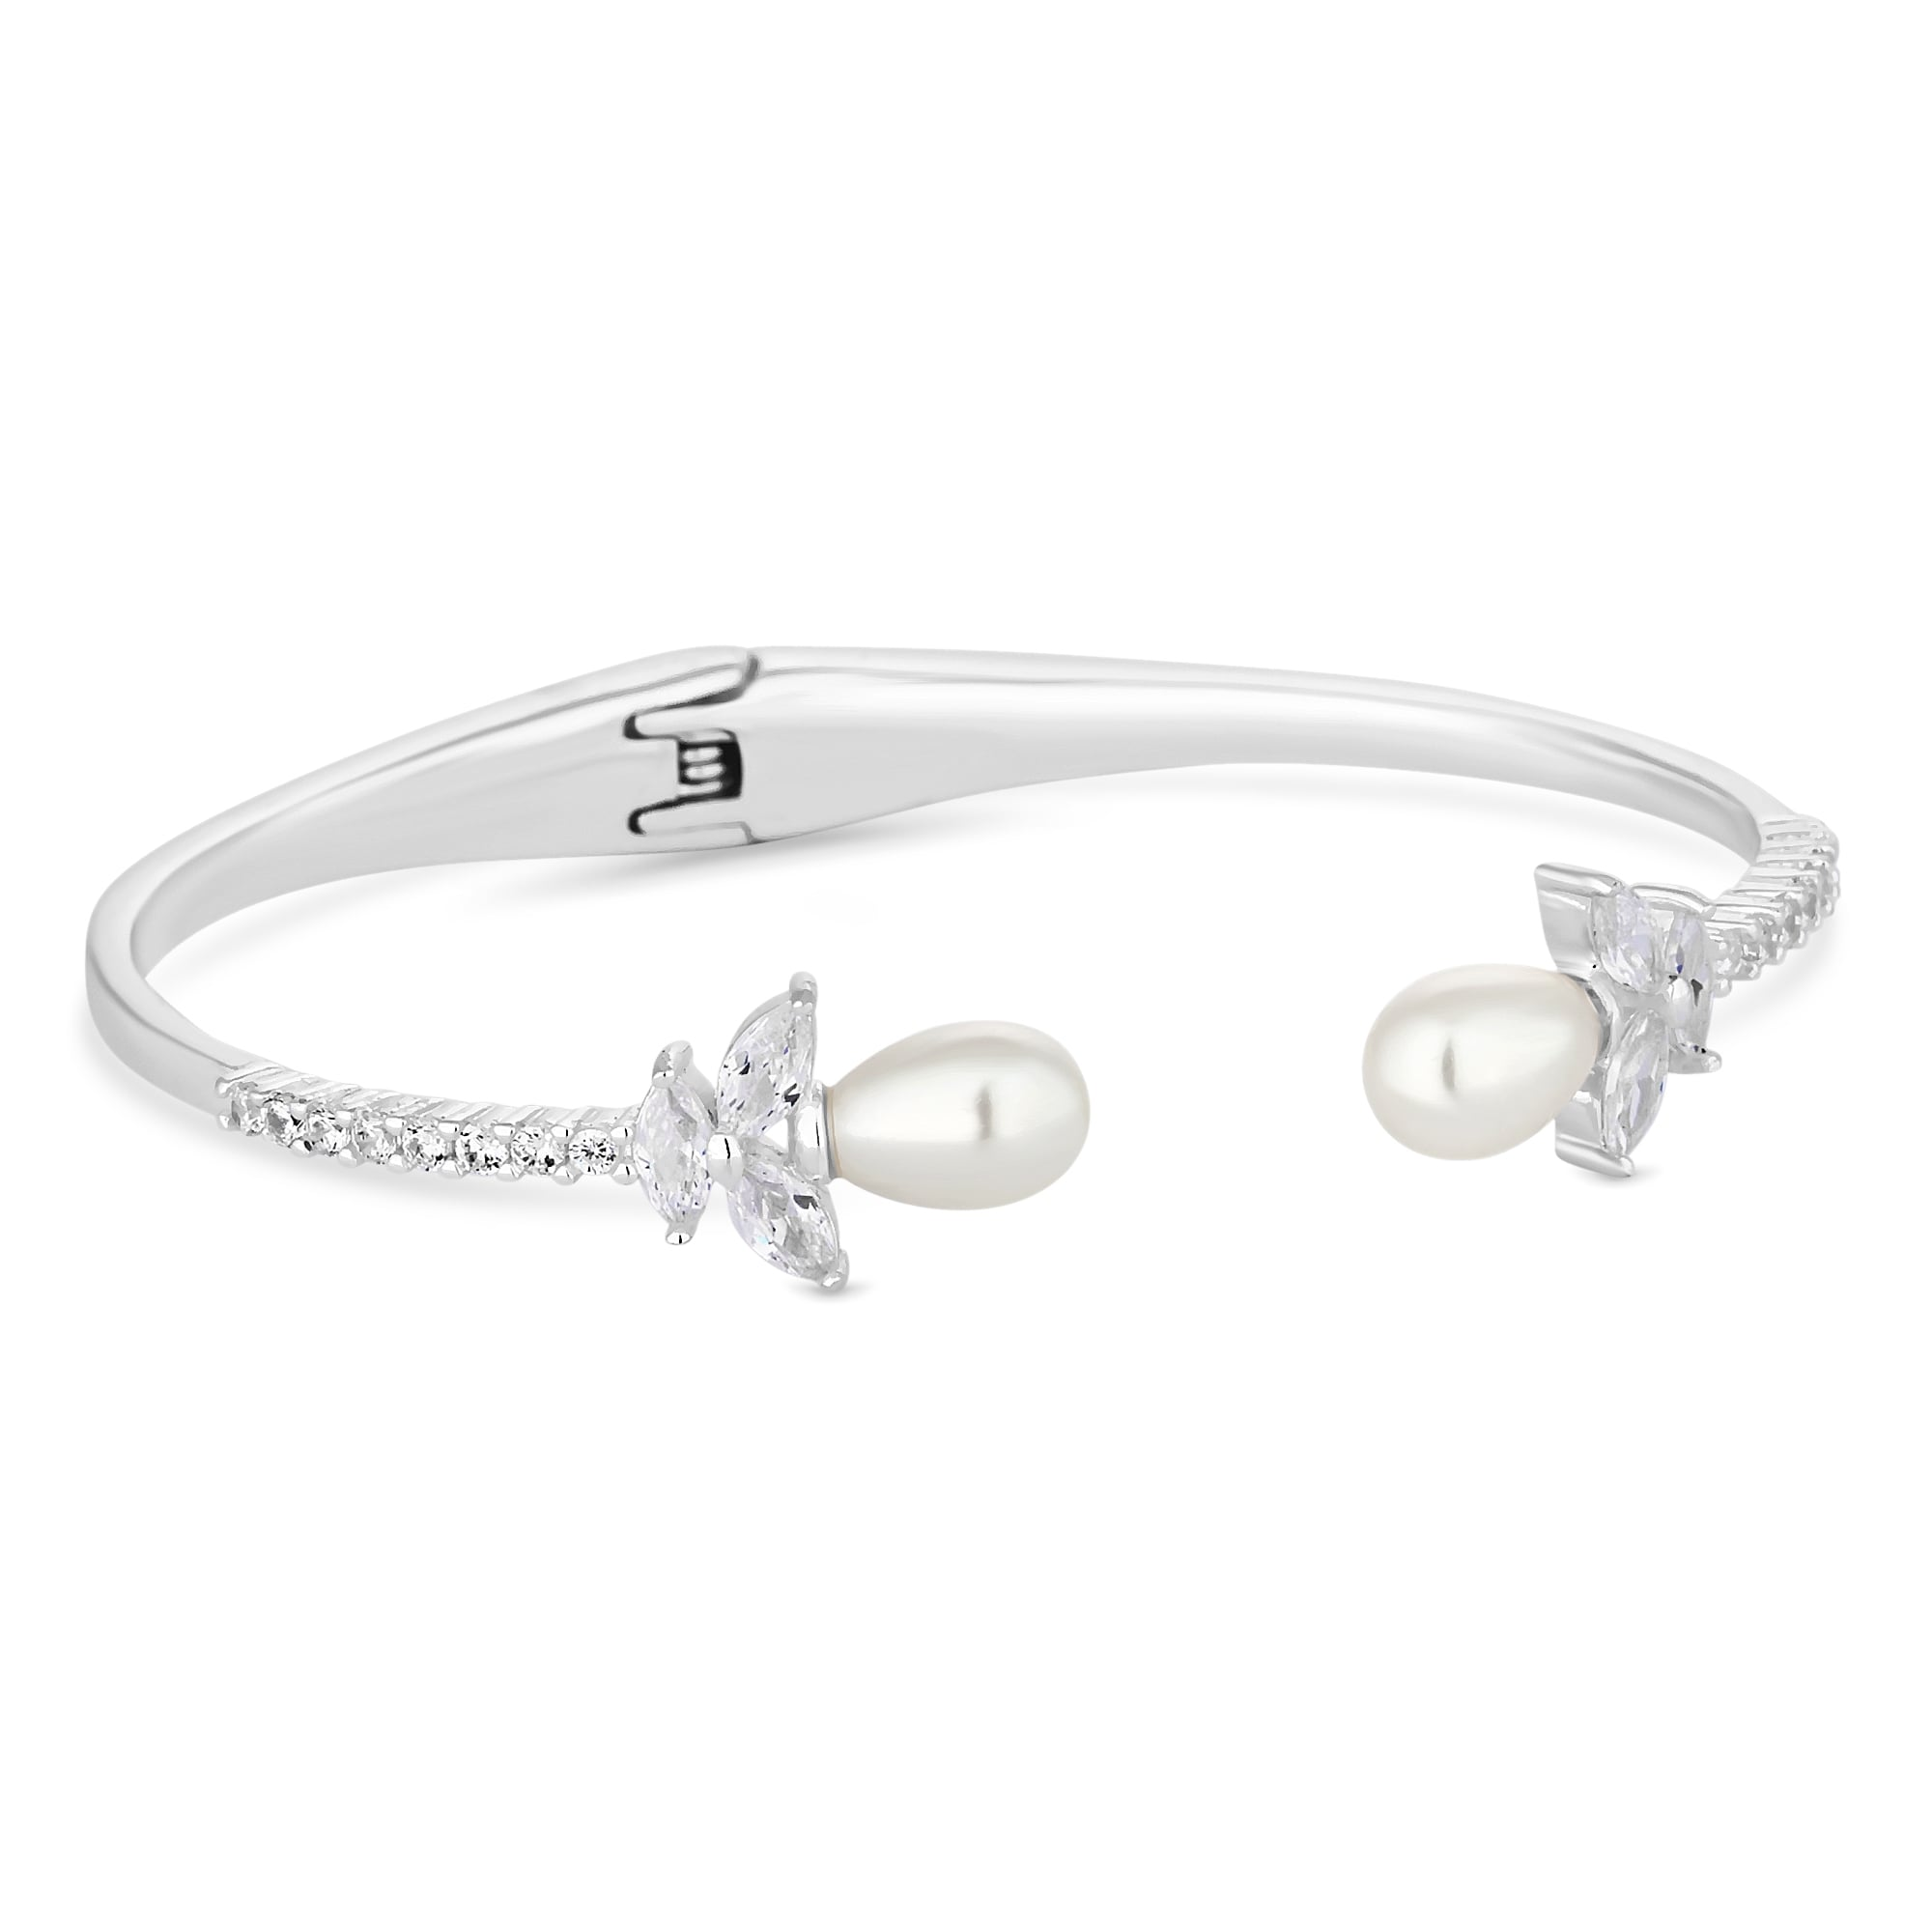 links cuff ladies bangles buy silver of london francis gaye timeless image bangle the